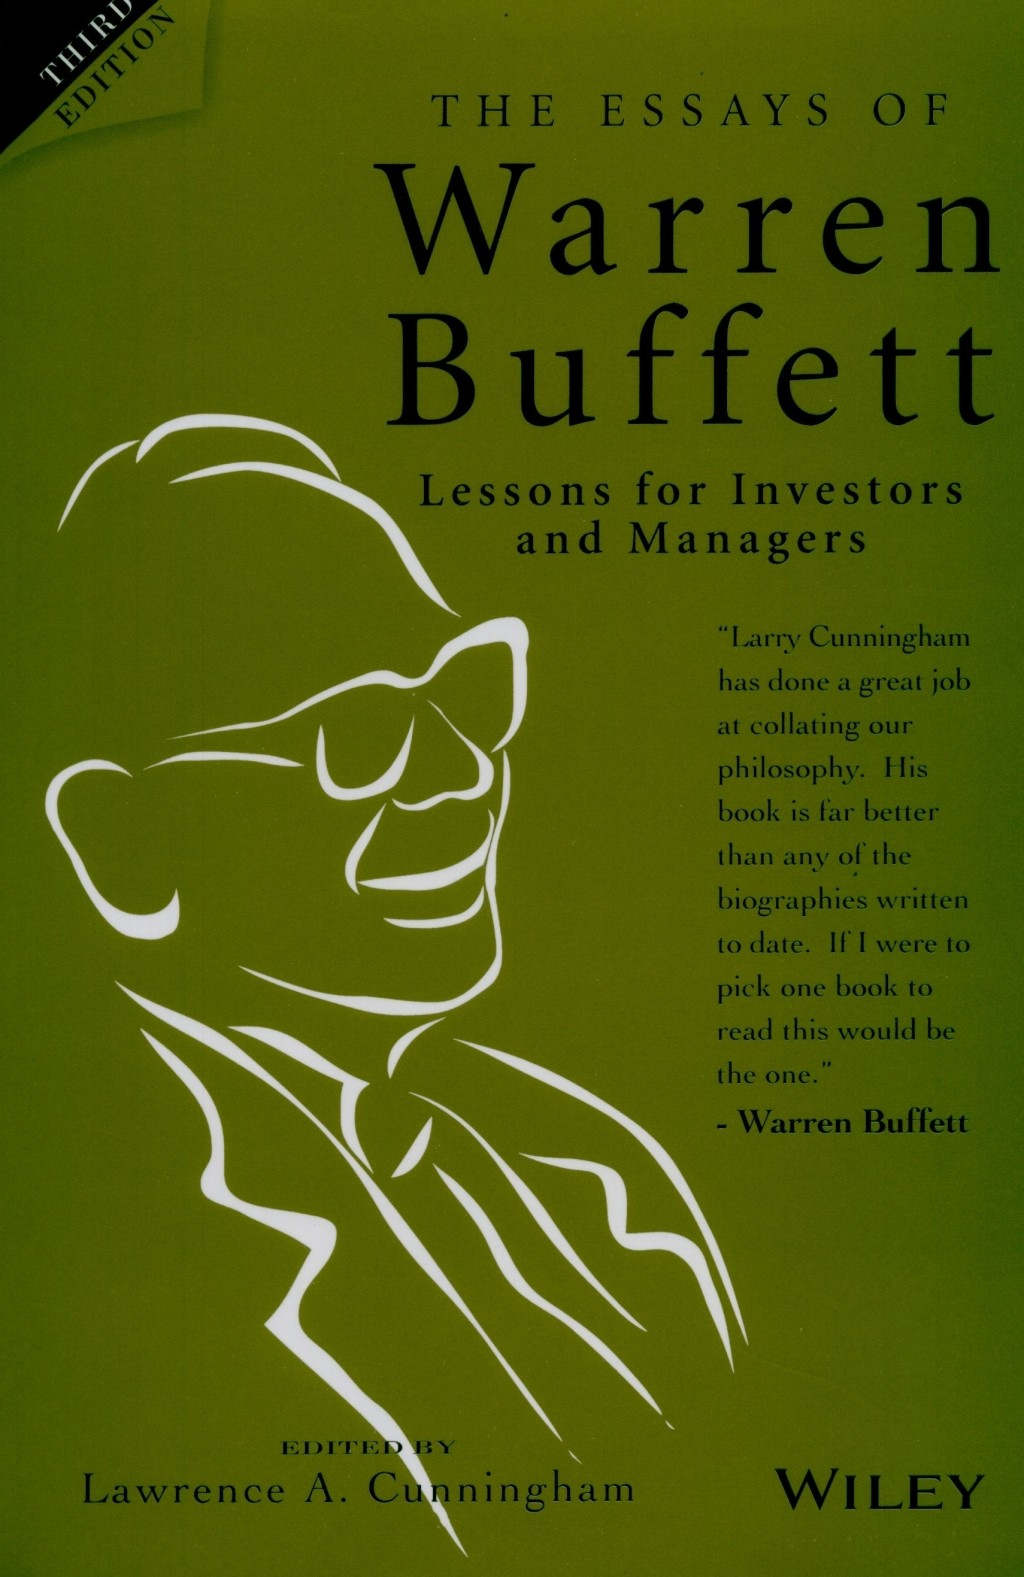 013 Essay Example The Essays Of Warren Buffett Lessons For Investors And Managers Original Striking 4th Edition Free Pdf Large